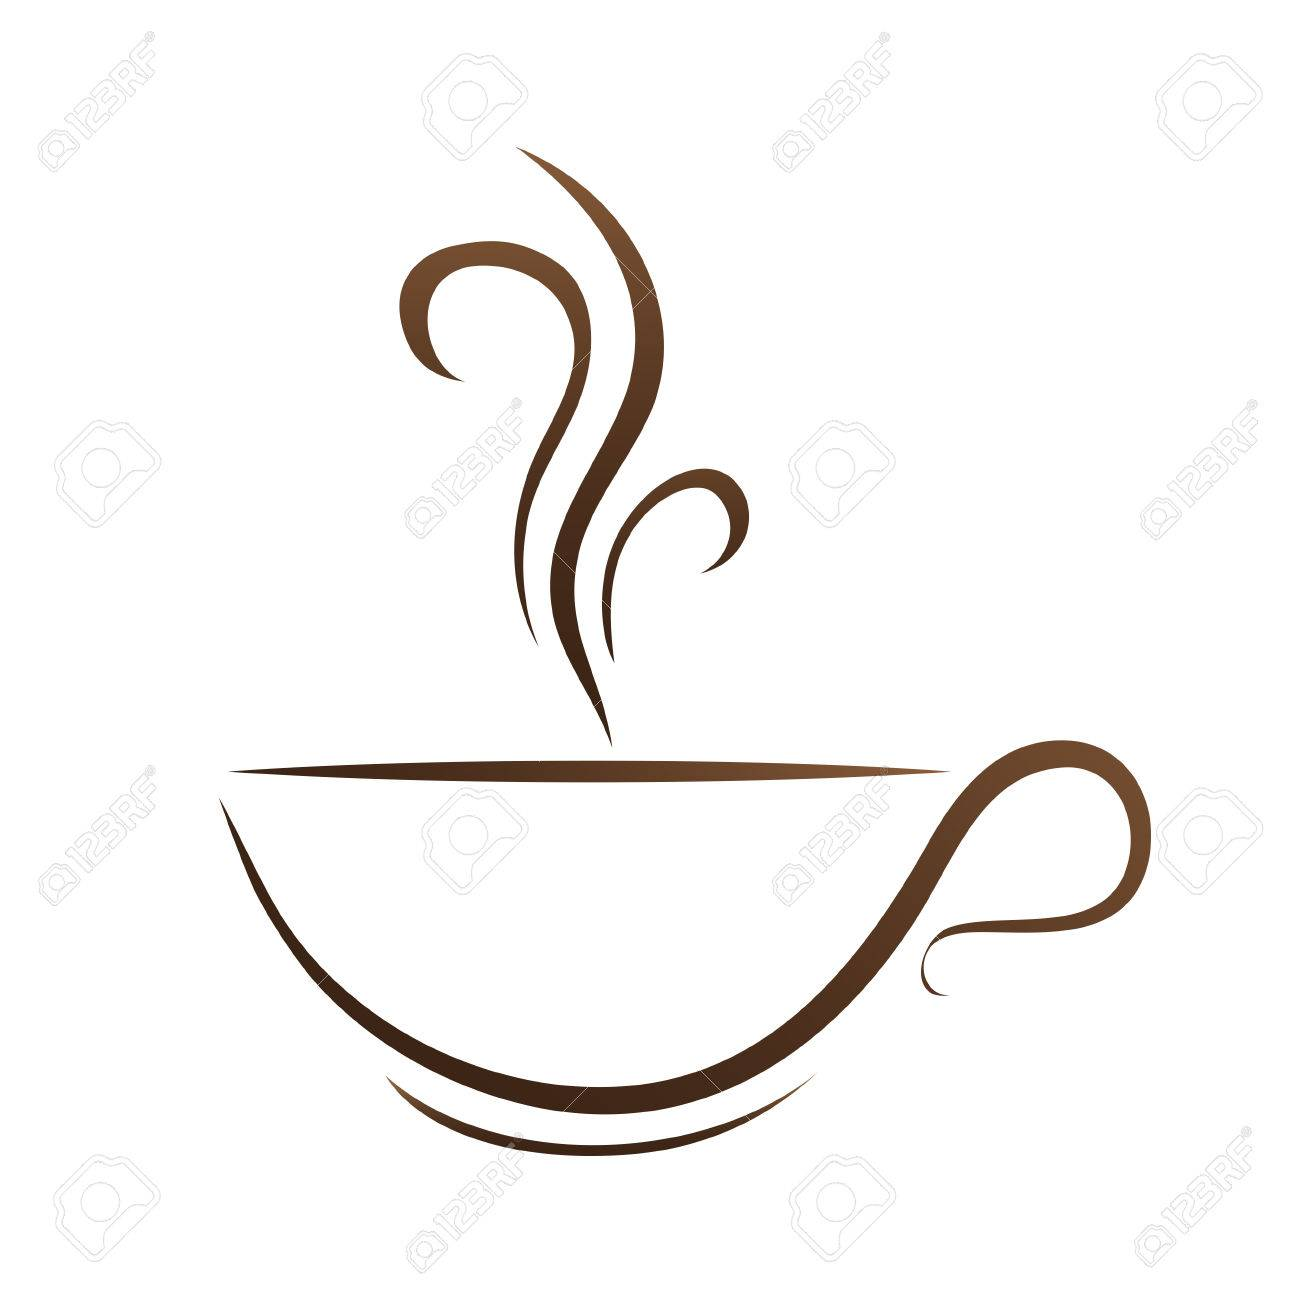 hot coffee cup vector on a white background royalty free cliparts rh 123rf com coffee cup vector design coffee cup vector design